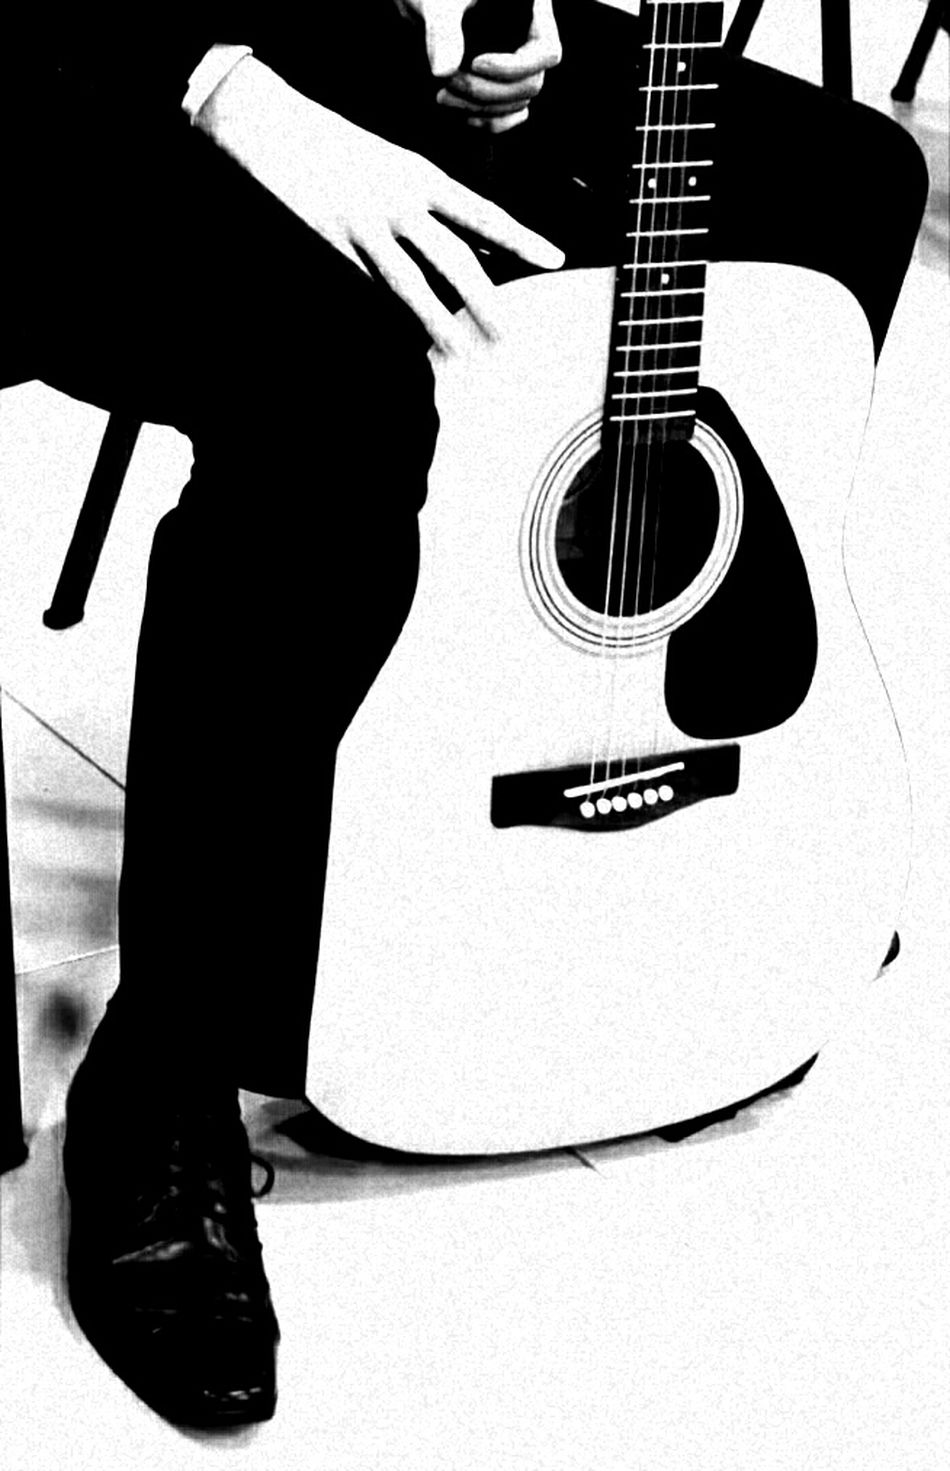 Music Musical Instrument Arts Culture And Entertainment Guitar Musician Plucking An Instrument Acoustic Acoustic Guitar Acoustic Music Acoustics Vintage Vintage Photo Vintage Moments Vintage Style Vintage Photography Vintagestyle Vintage Look Vintagelook Vintagefilter Vintage Filter Vintageguitar Vintage Guitar Vintagemusic Vintage Music EyeEmNewHere